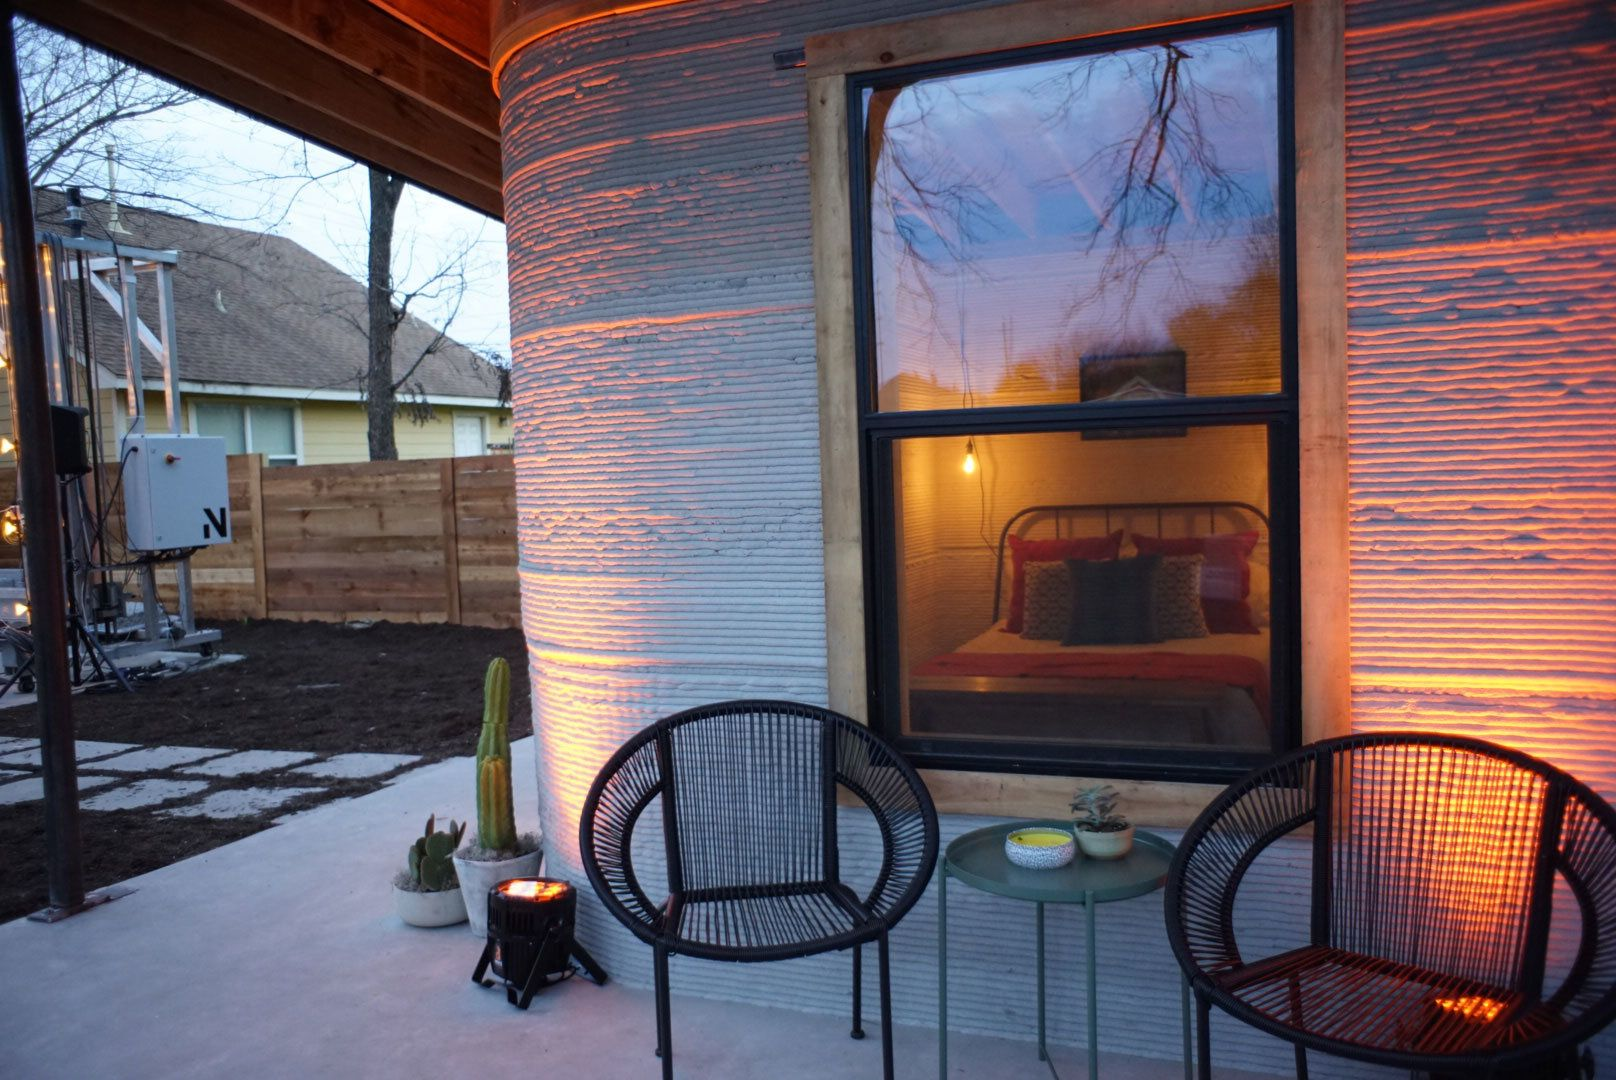 This $10000 3D-Printed Concrete House Took Only 24 Hours to Build